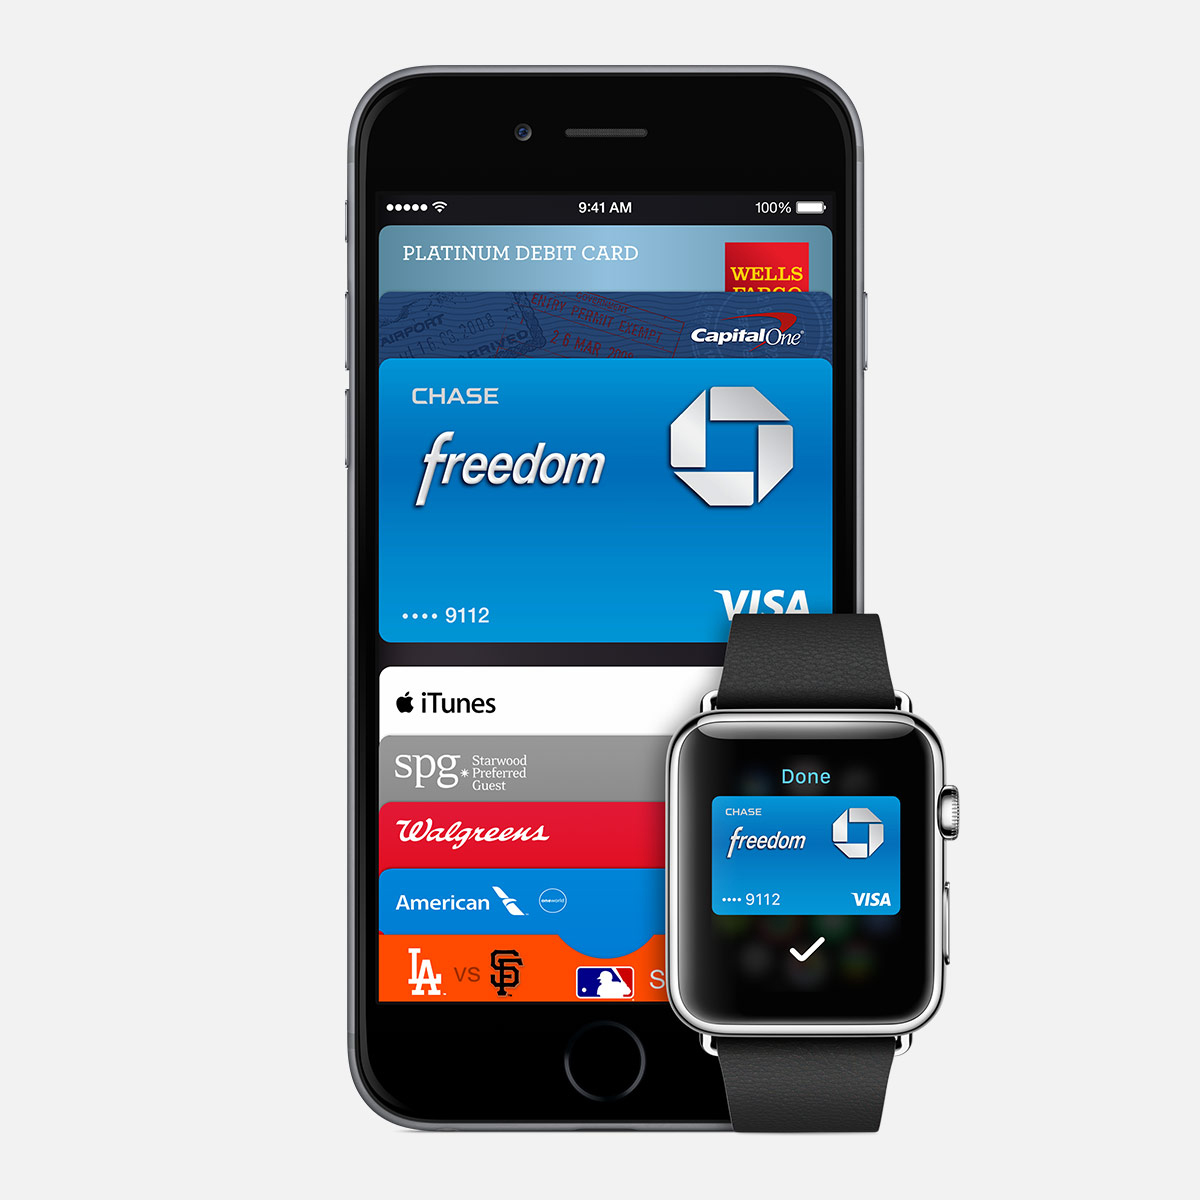 Apple Pay can now be used by customers of 24 more credit unions and banks